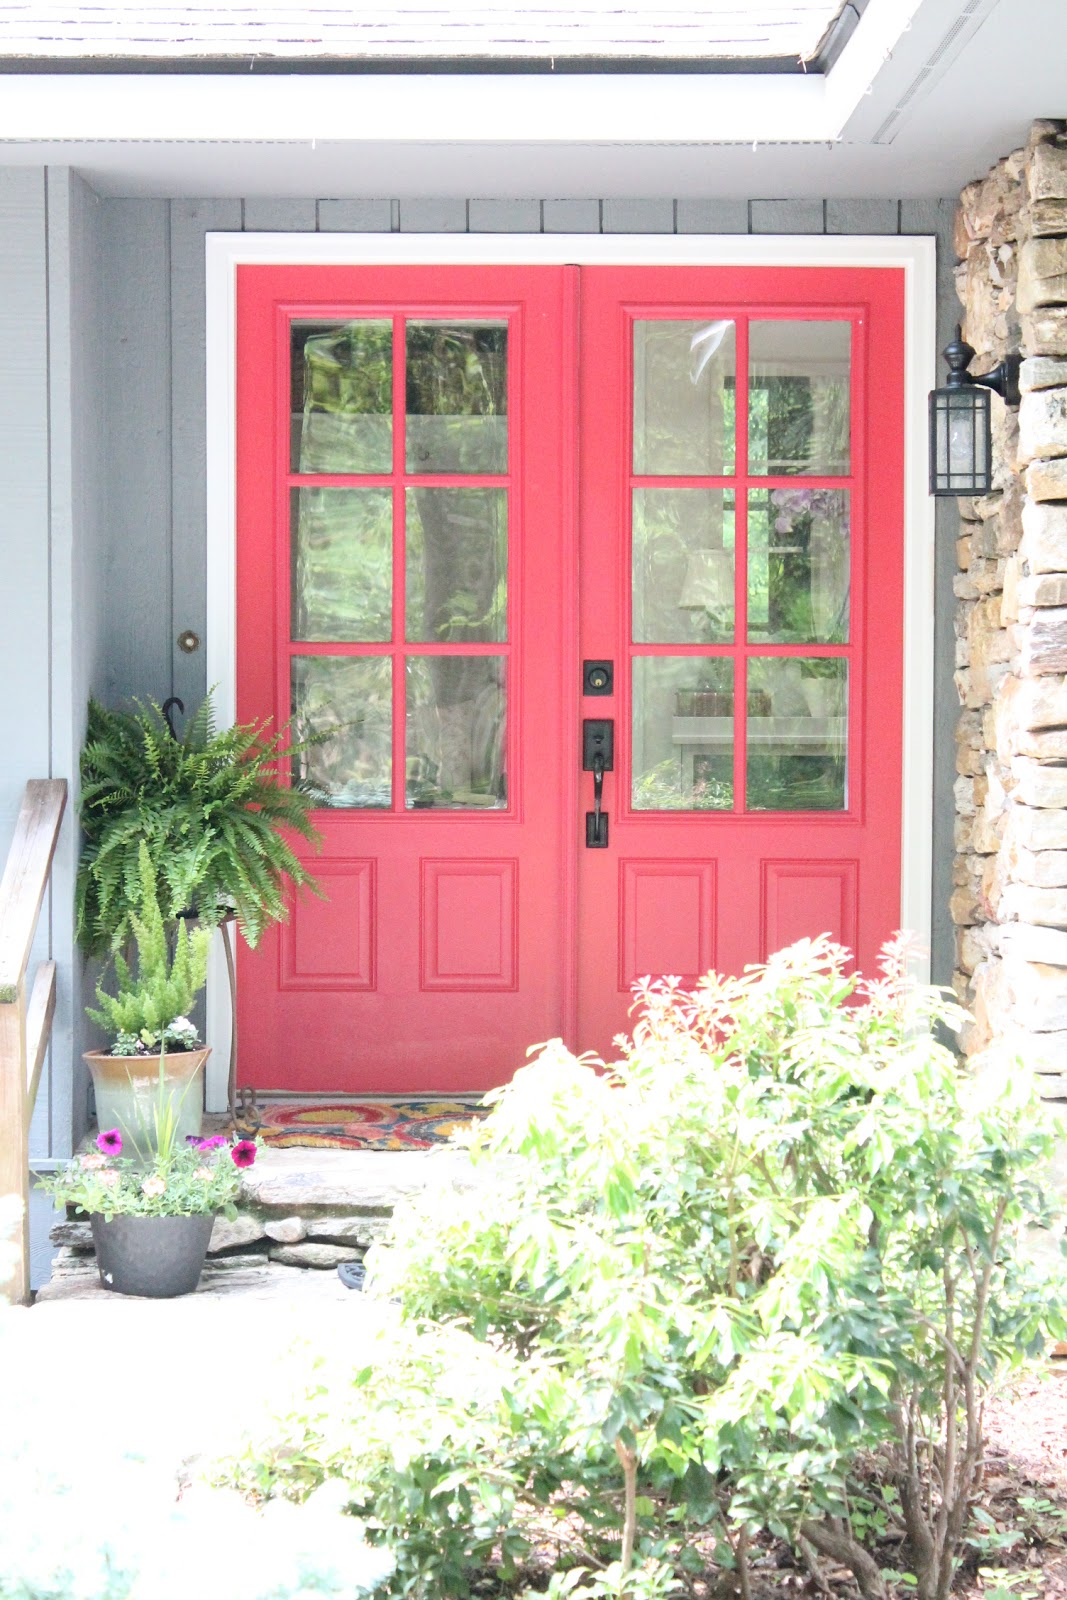 12 Painted Pink Door Ideas, so cute! - Pink Door Ideas - Lolly Jane